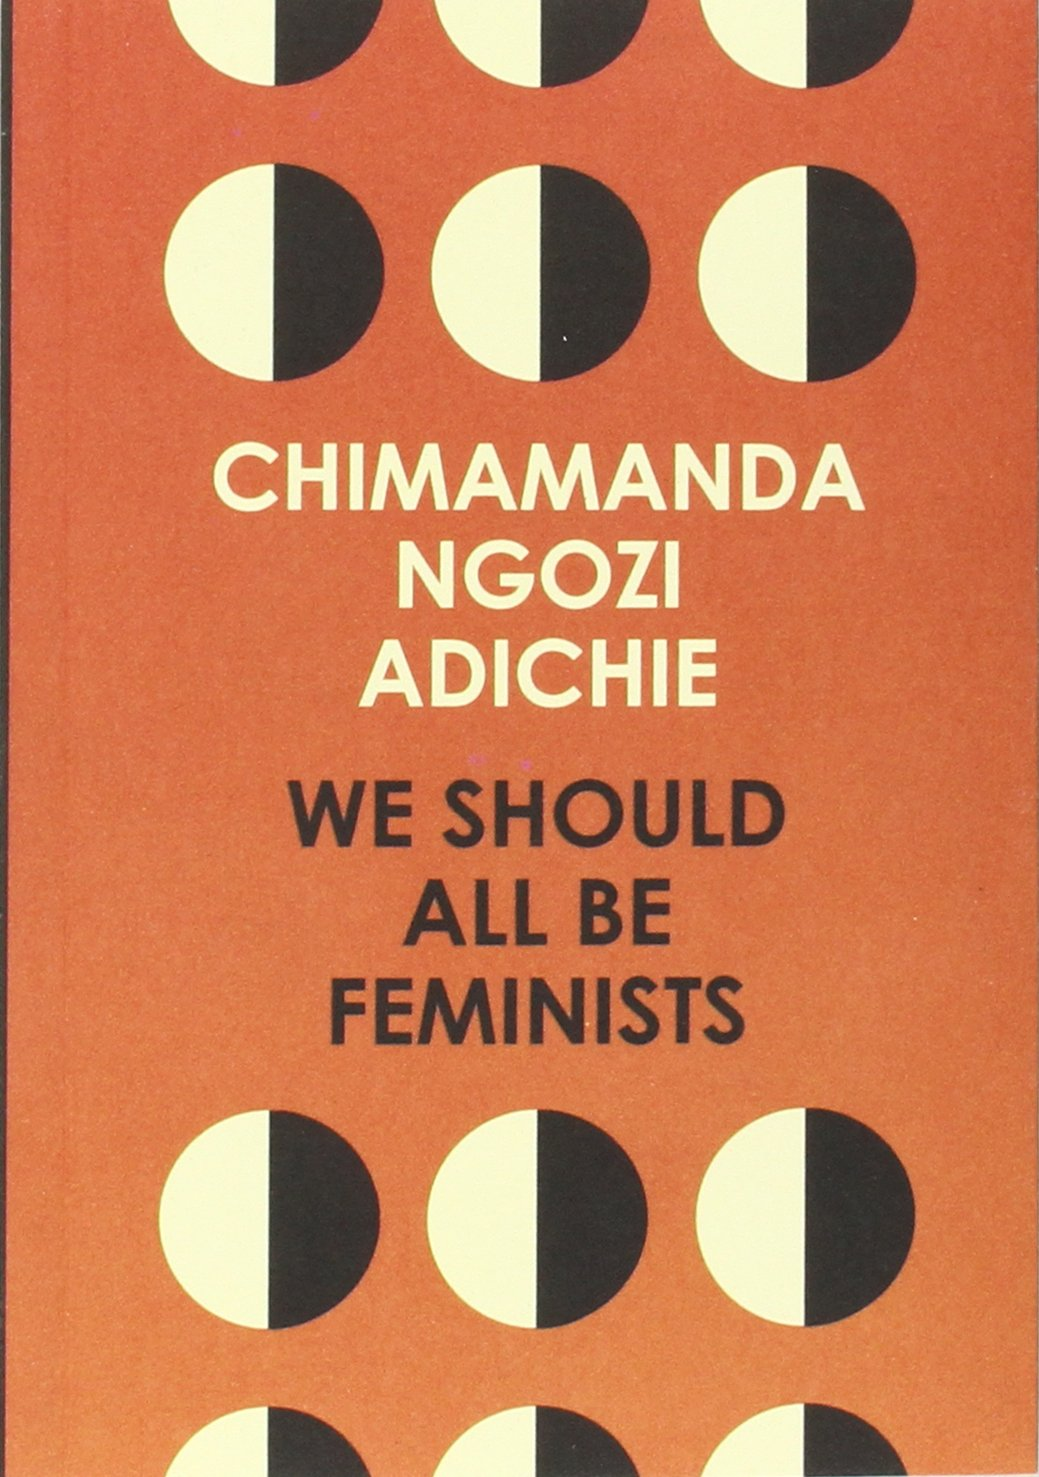 we should all be feminists amazon co uk chimamanda ngozi adichie we should all be feminists amazon co uk chimamanda ngozi adichie 9780008115272 books